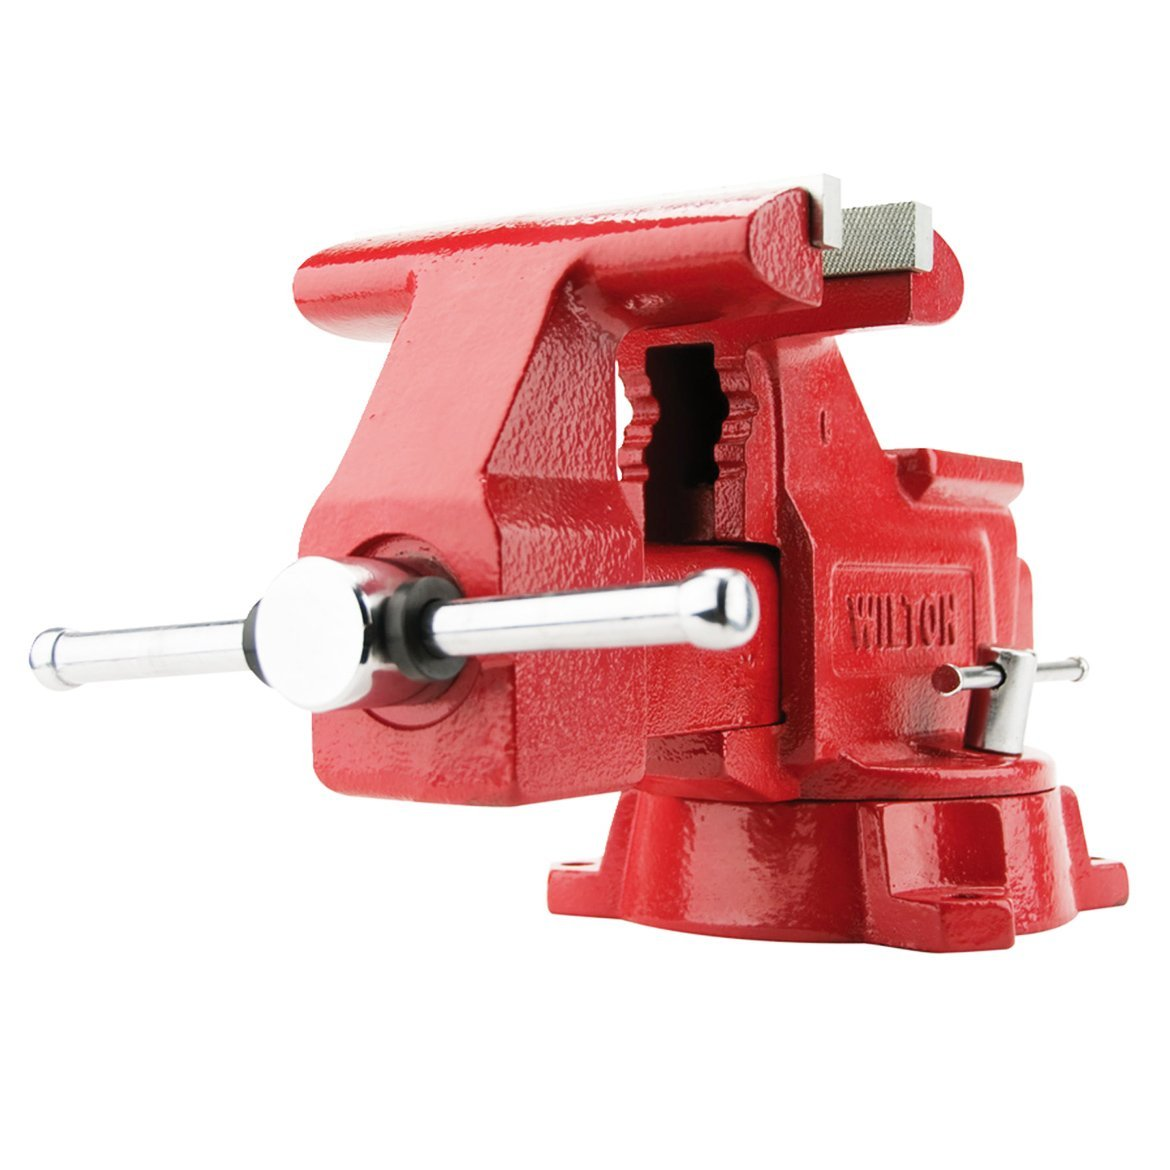 Wilton 11800 648HD Utility Workshop Vise by Wilton